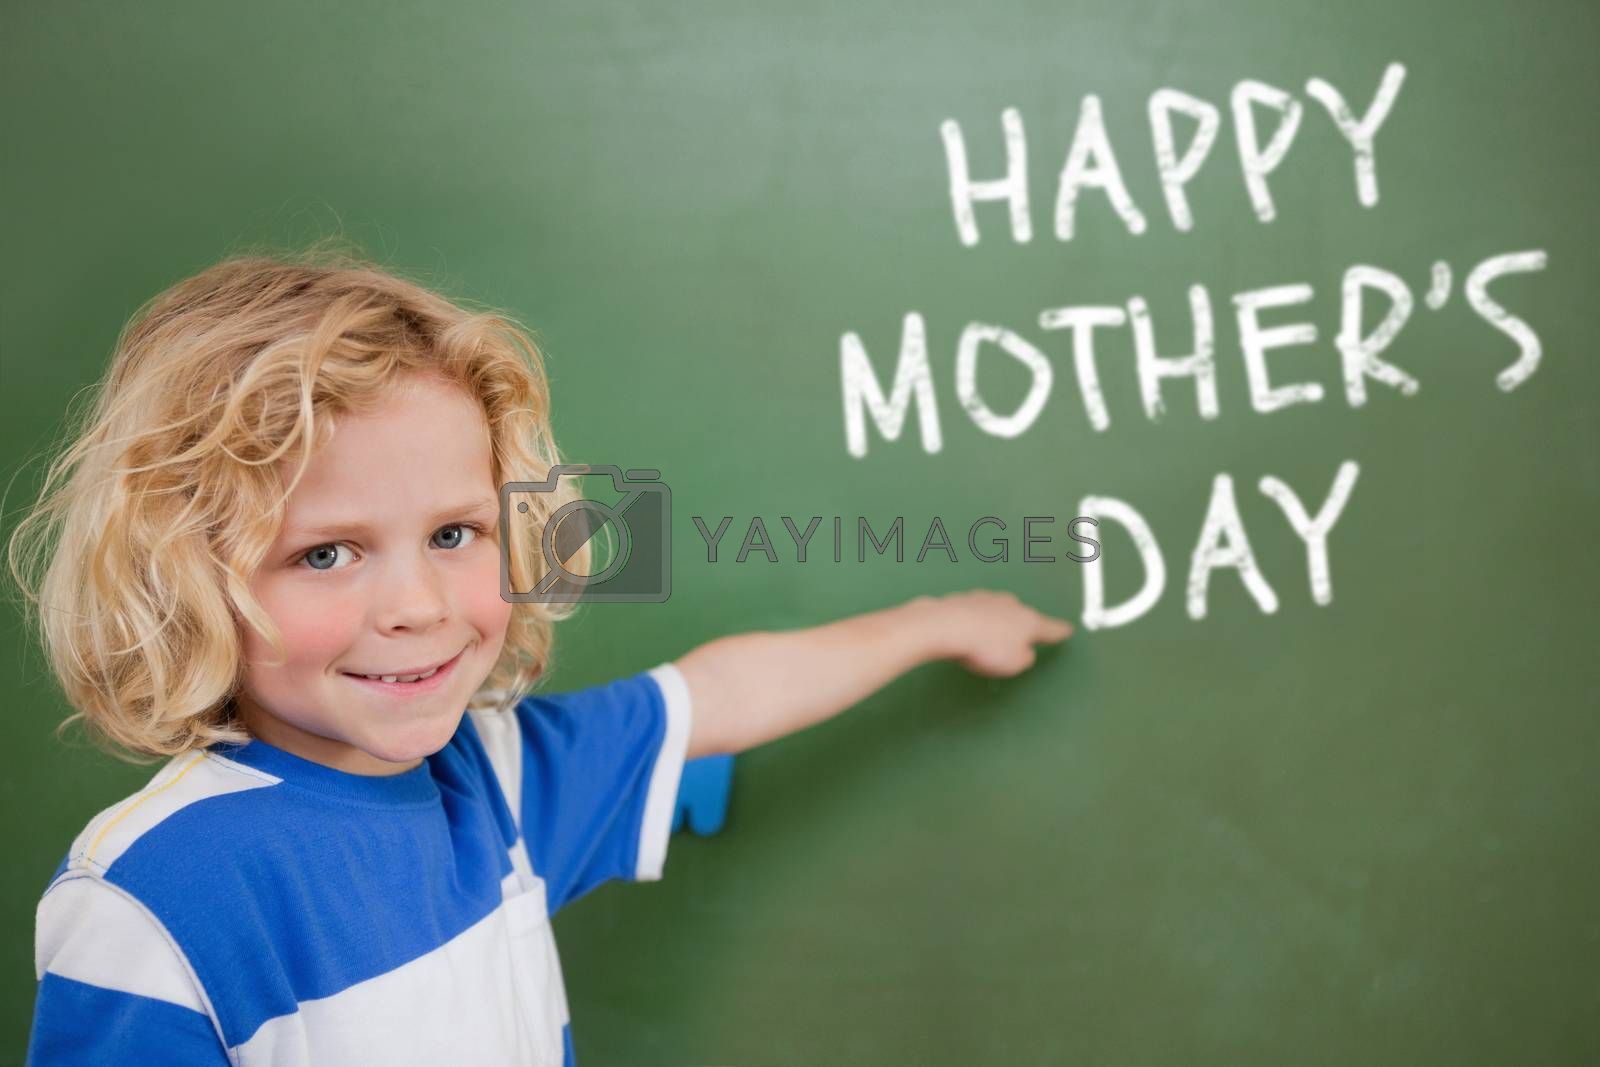 Mothers day greeting against black background